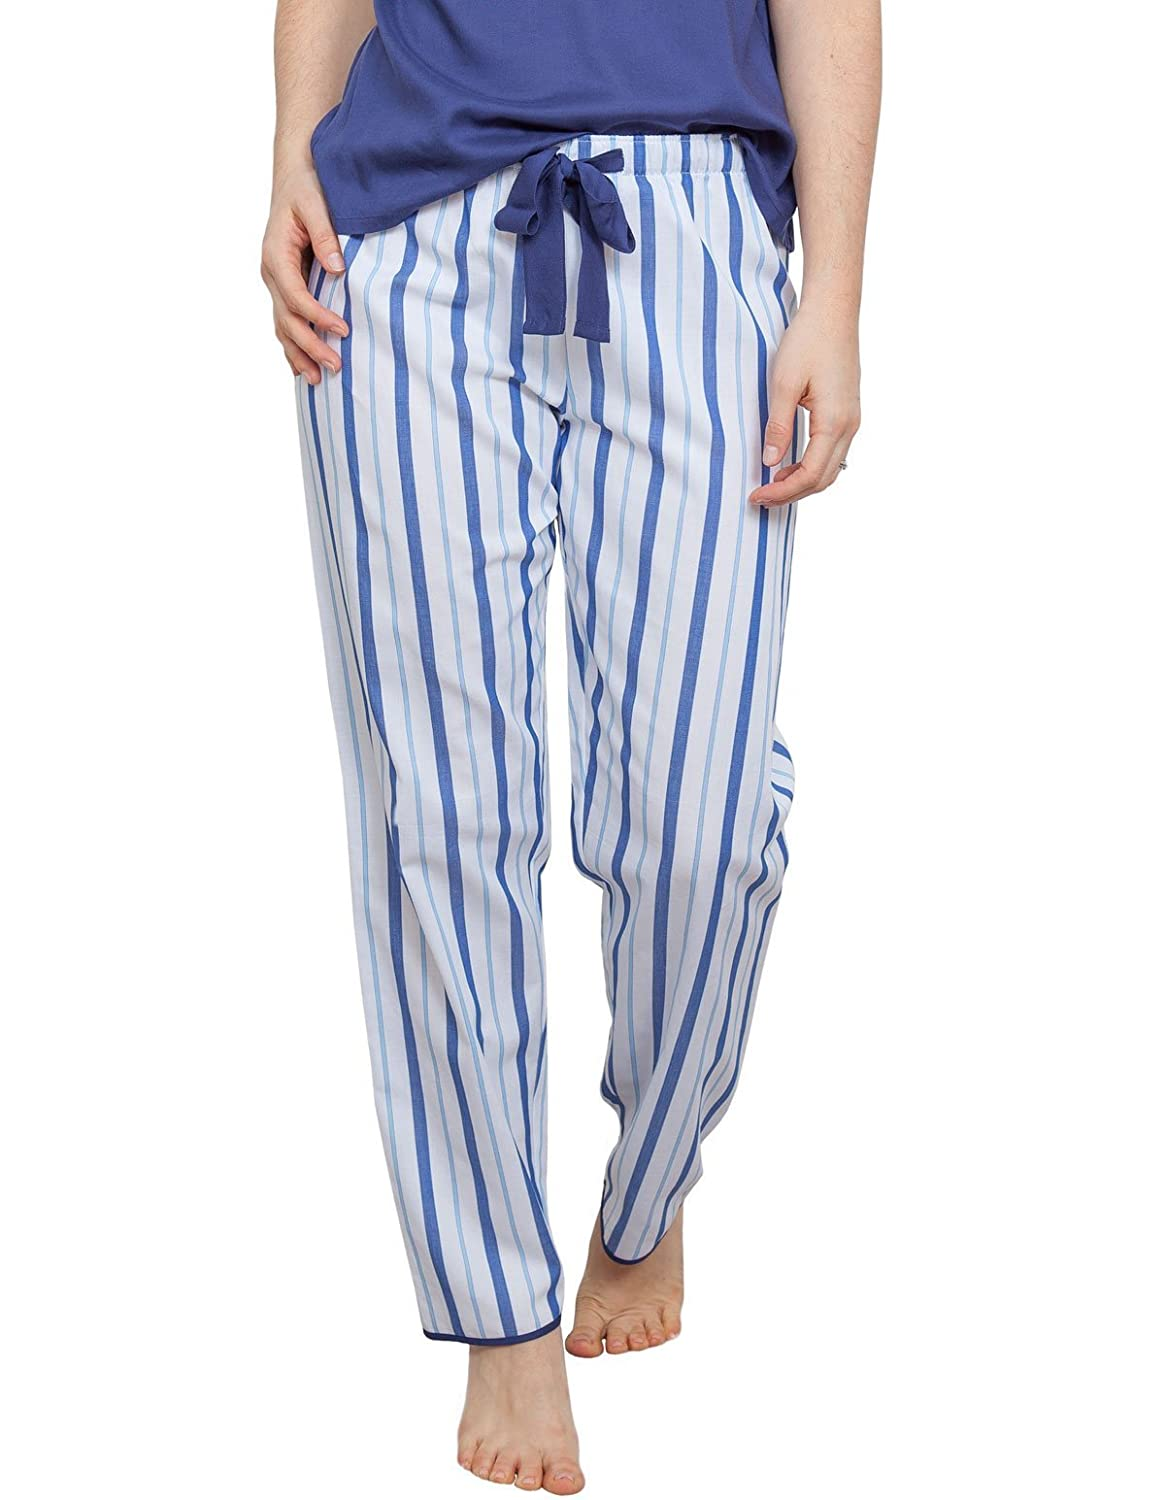 TALLA 34. Cyberjammies 3761 Women's Ophelia Blue Striped Pajama Pyjama Pant